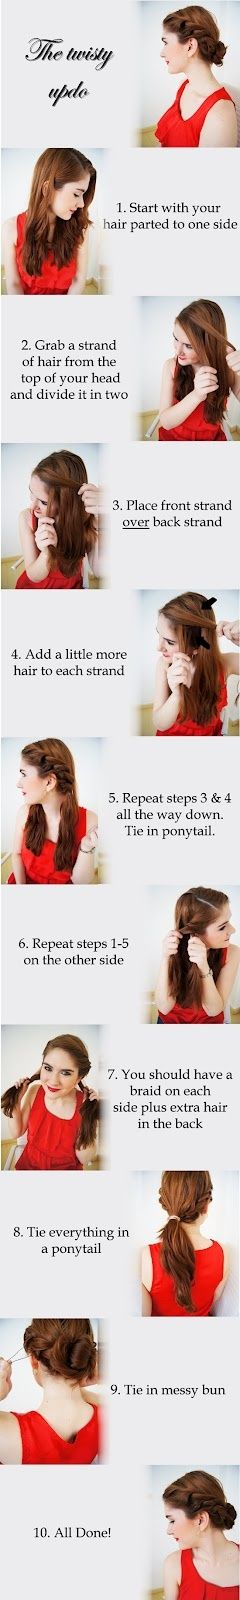 An adorable updo with how-to instructions. Tuck flowers into it when attending a special event, wear it on a hot day, or speed up the morning routine by not straightening or curling your hair!